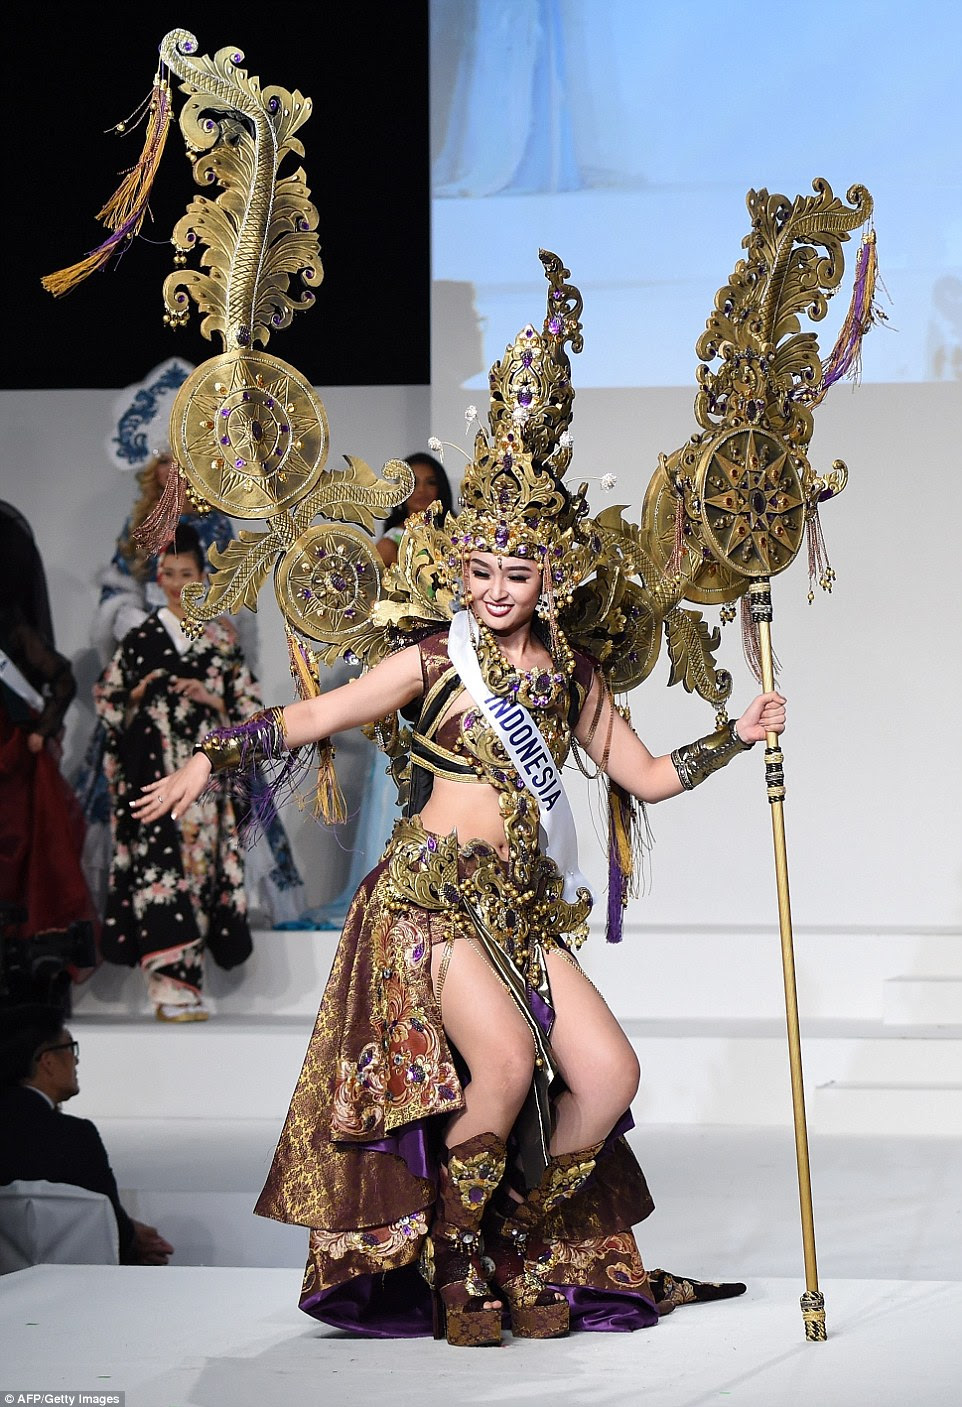 Another intricate costume came from Miss Indonesia, Chintya Fabiola. Inspired by the traditional dress worn by folk dancers, Chintya made a few moves herself, using her embellished staff as a prop. Her tall gold headdress was complemented by two gold tassled 'wings', a collar, a belt, cuffs and shin-high platform boots